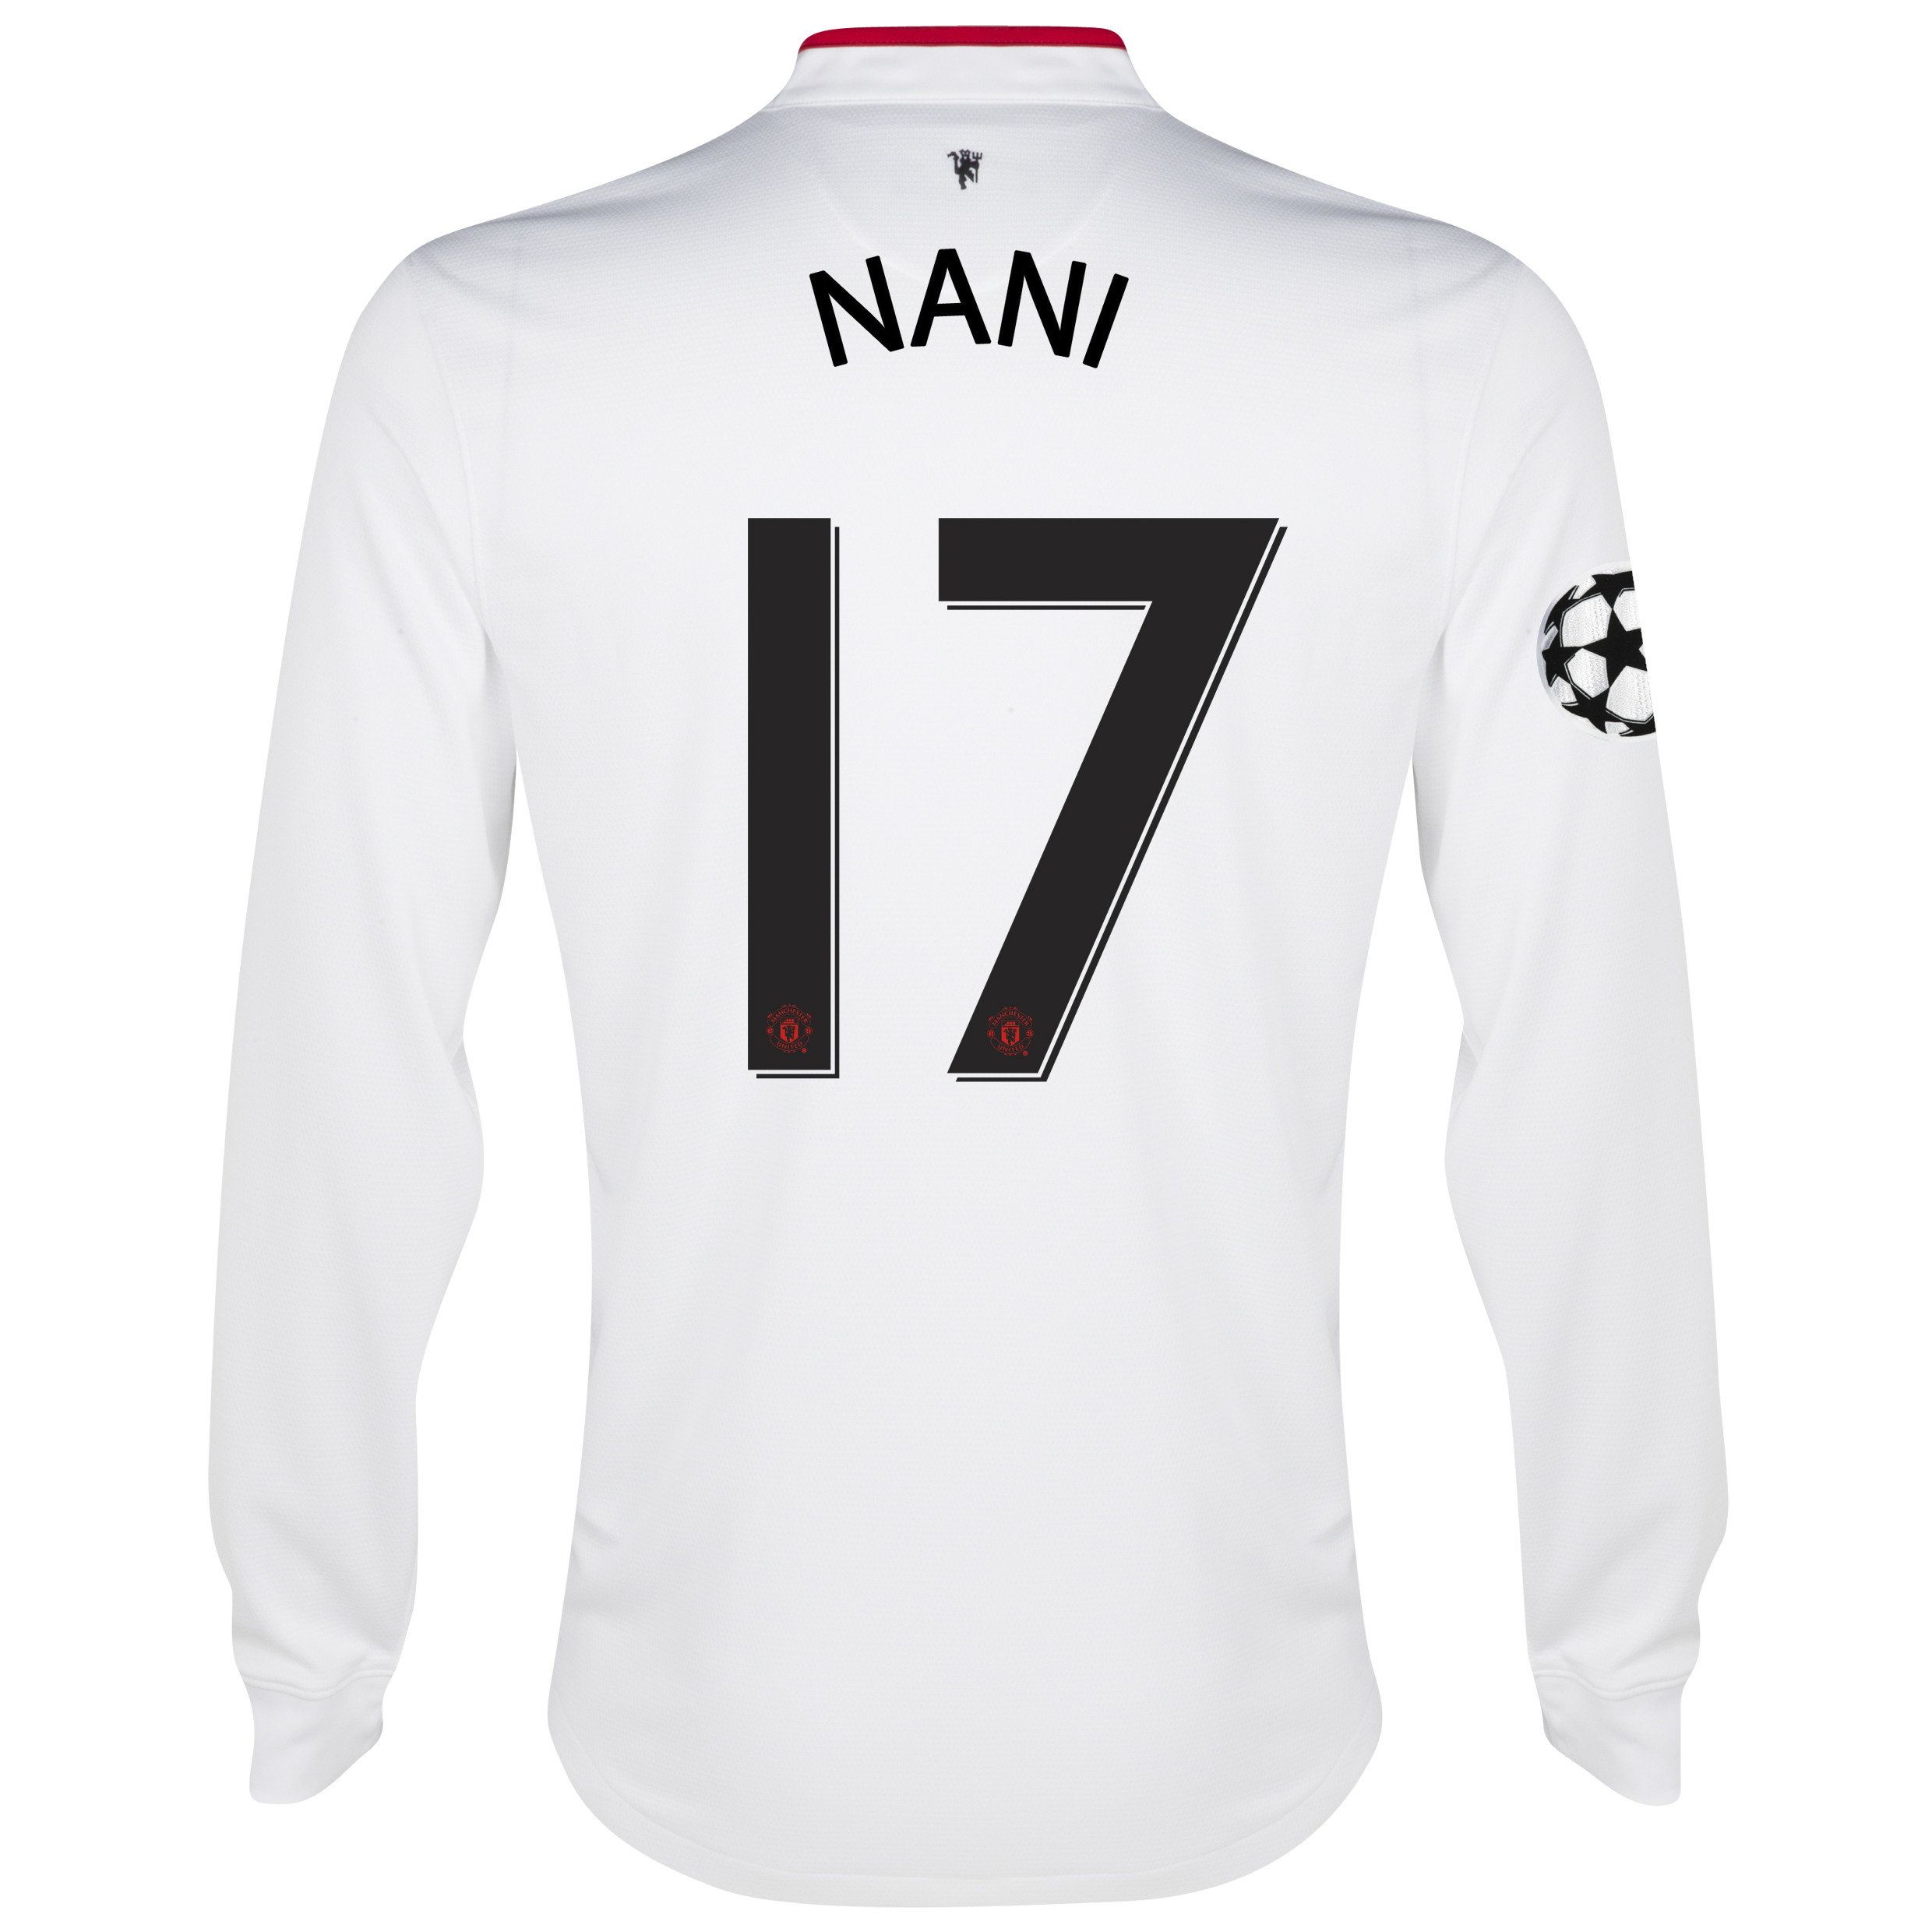 Manchester United UEFA Champions League Away Shirt 2012/13 - Long Sleeved - Youths with Nani 17 printing